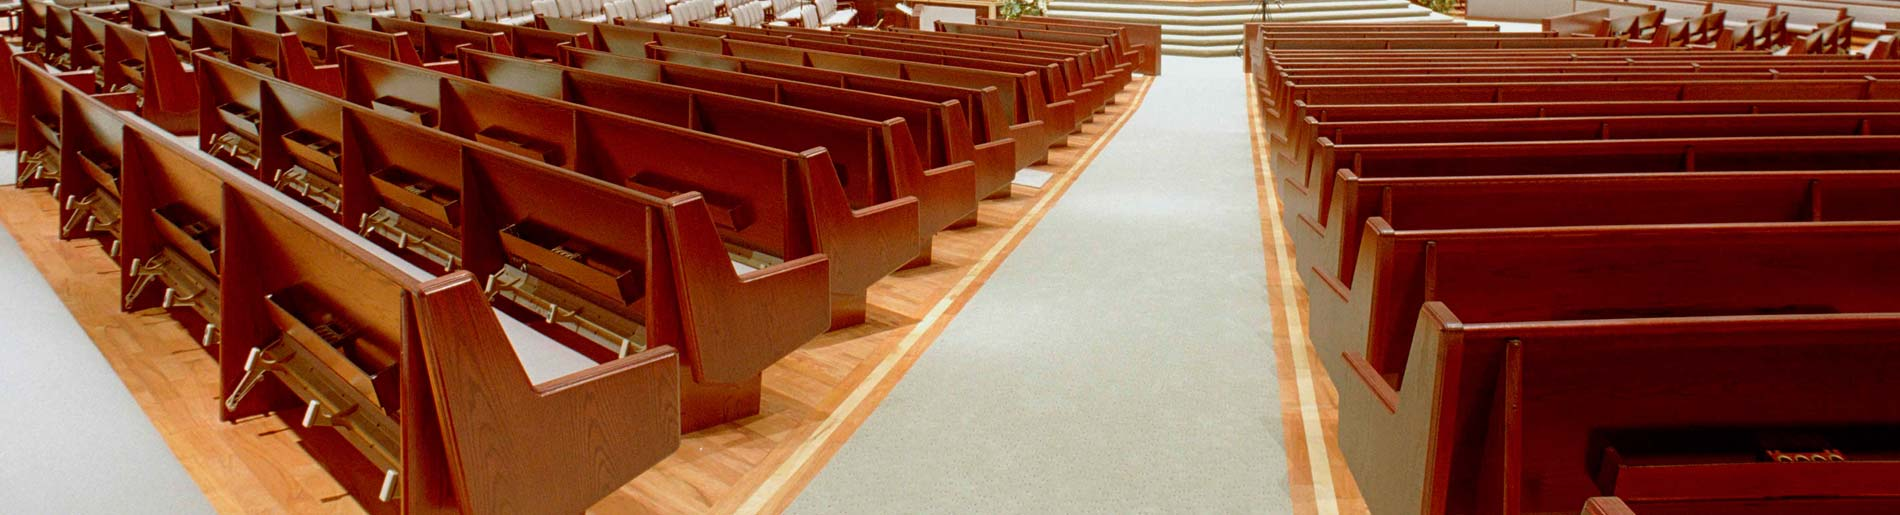 Pew Chairs Church Pew Benches Pew Chairs Imperial Woodworks Pews